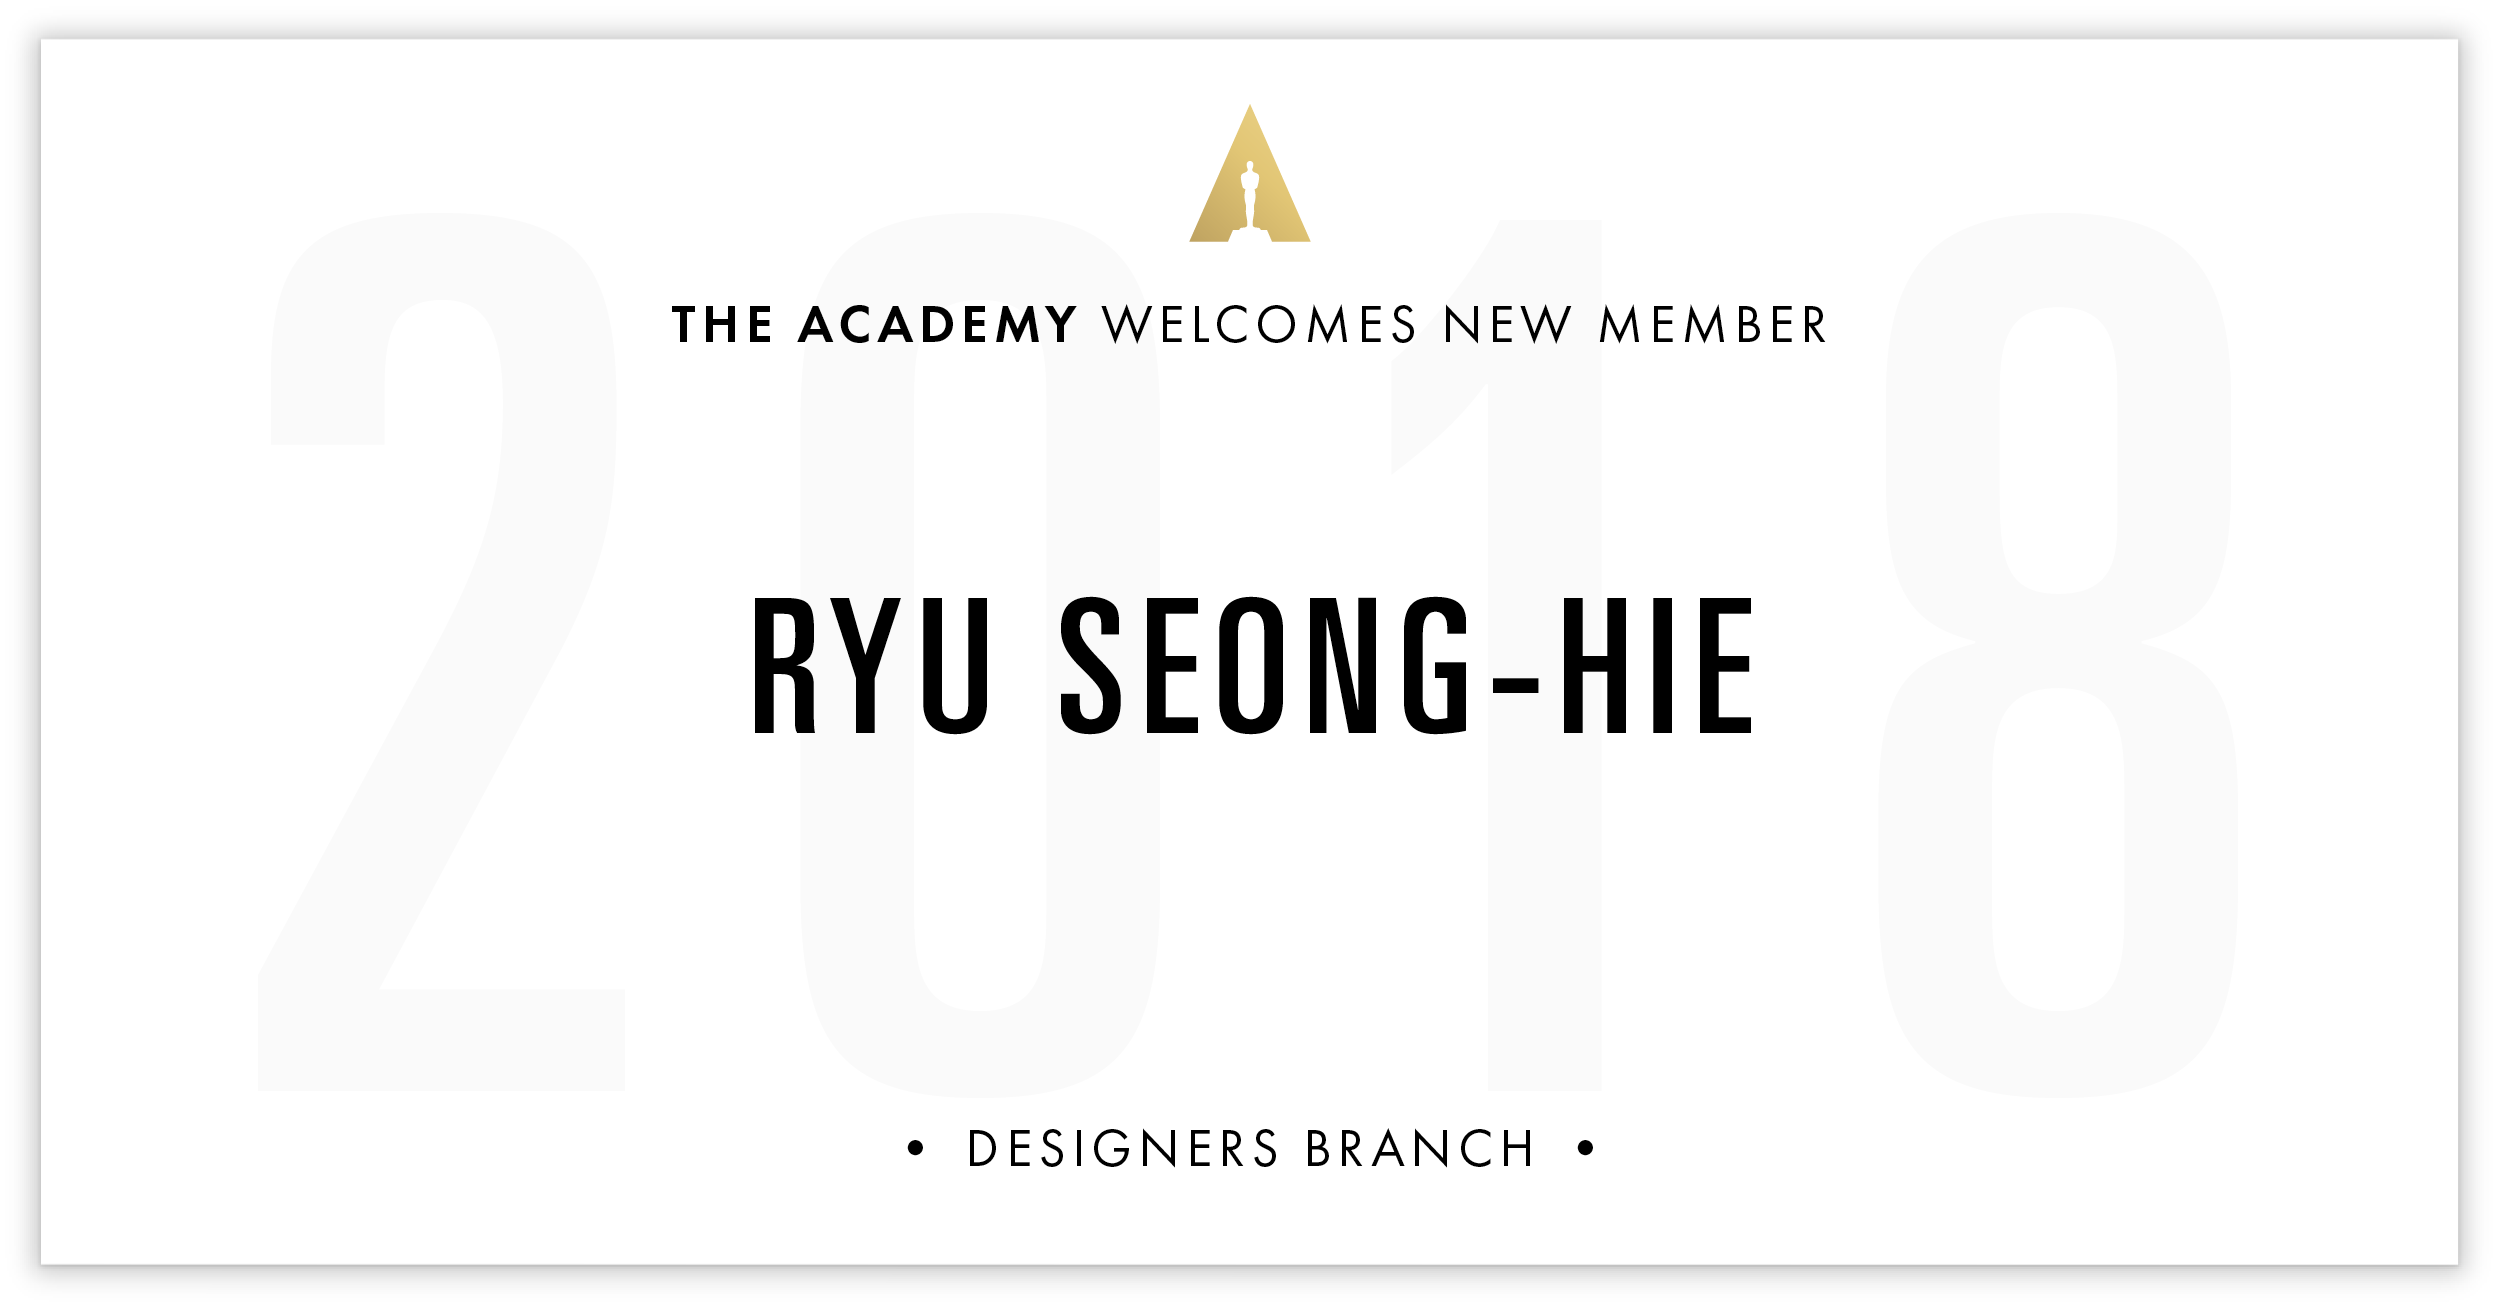 Ryu Seong-hie is invited!